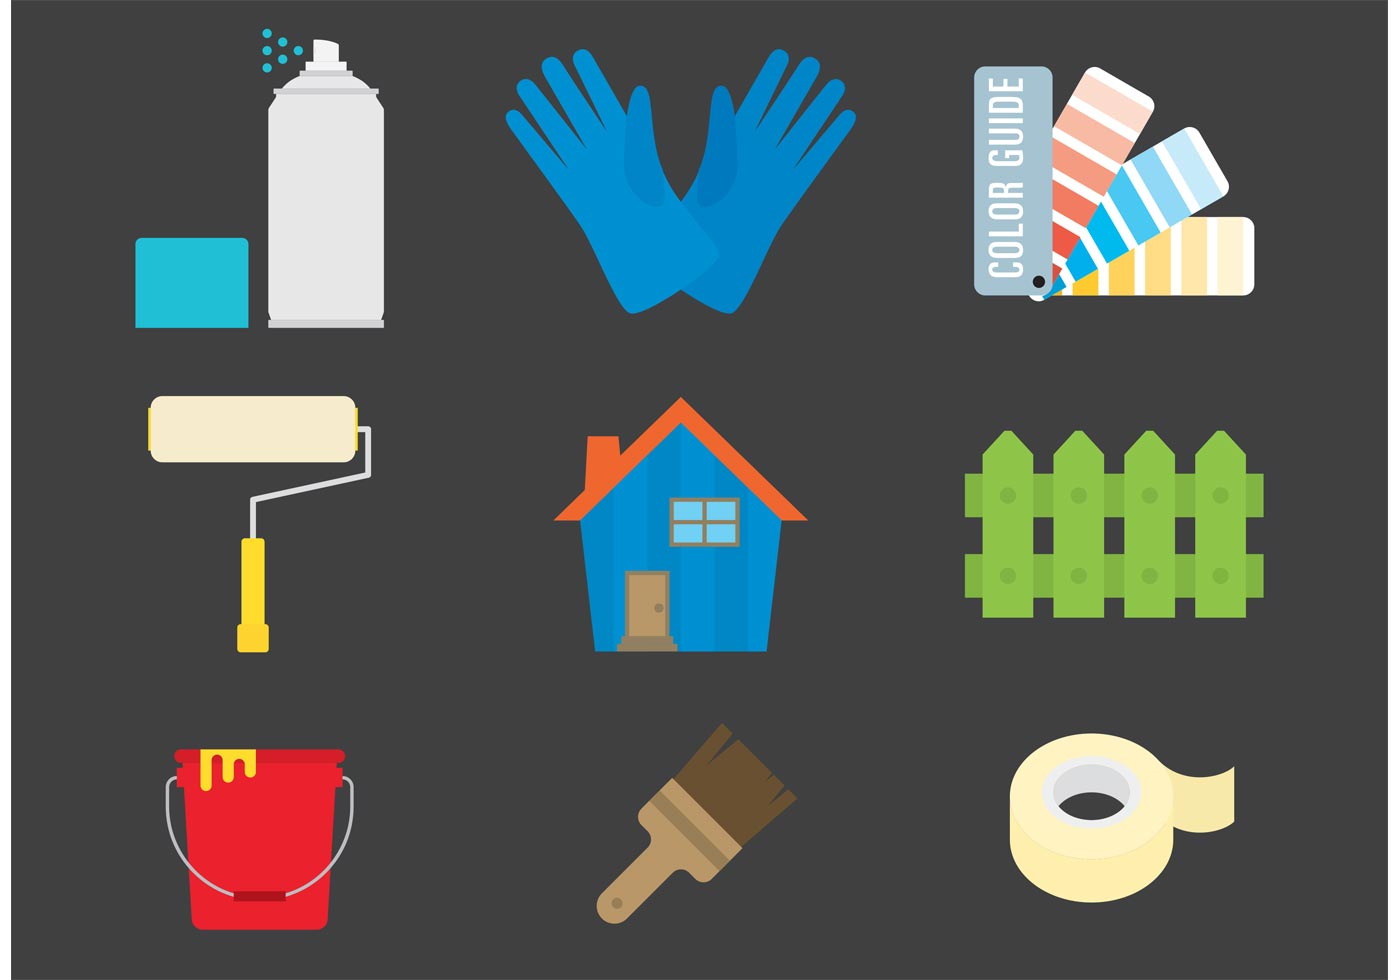 Painting And Home Vector Icons Download Free Vectors